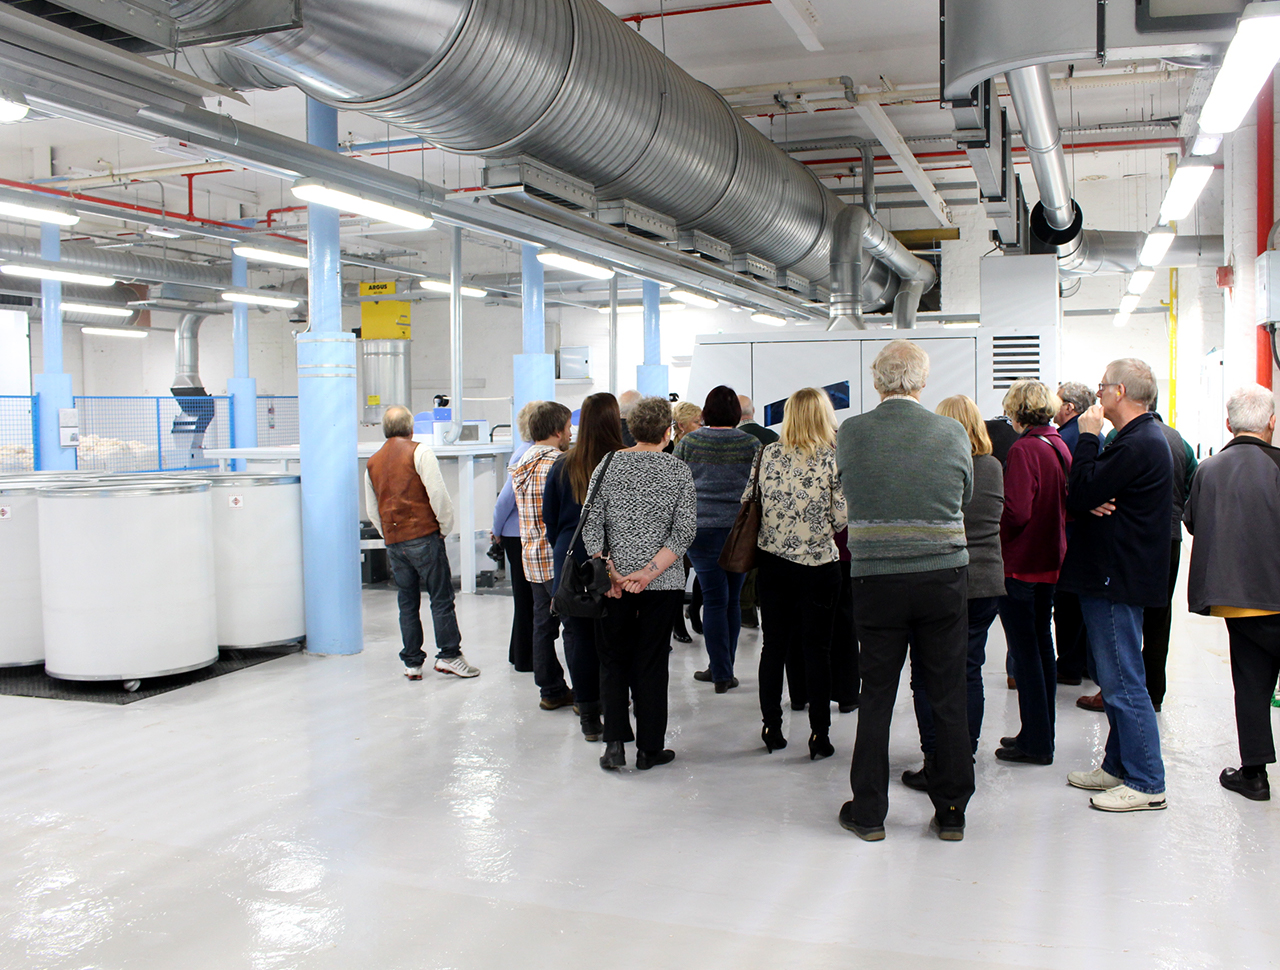 a-tour-of-tower-mill-guests-looking-around-the-ground-floor